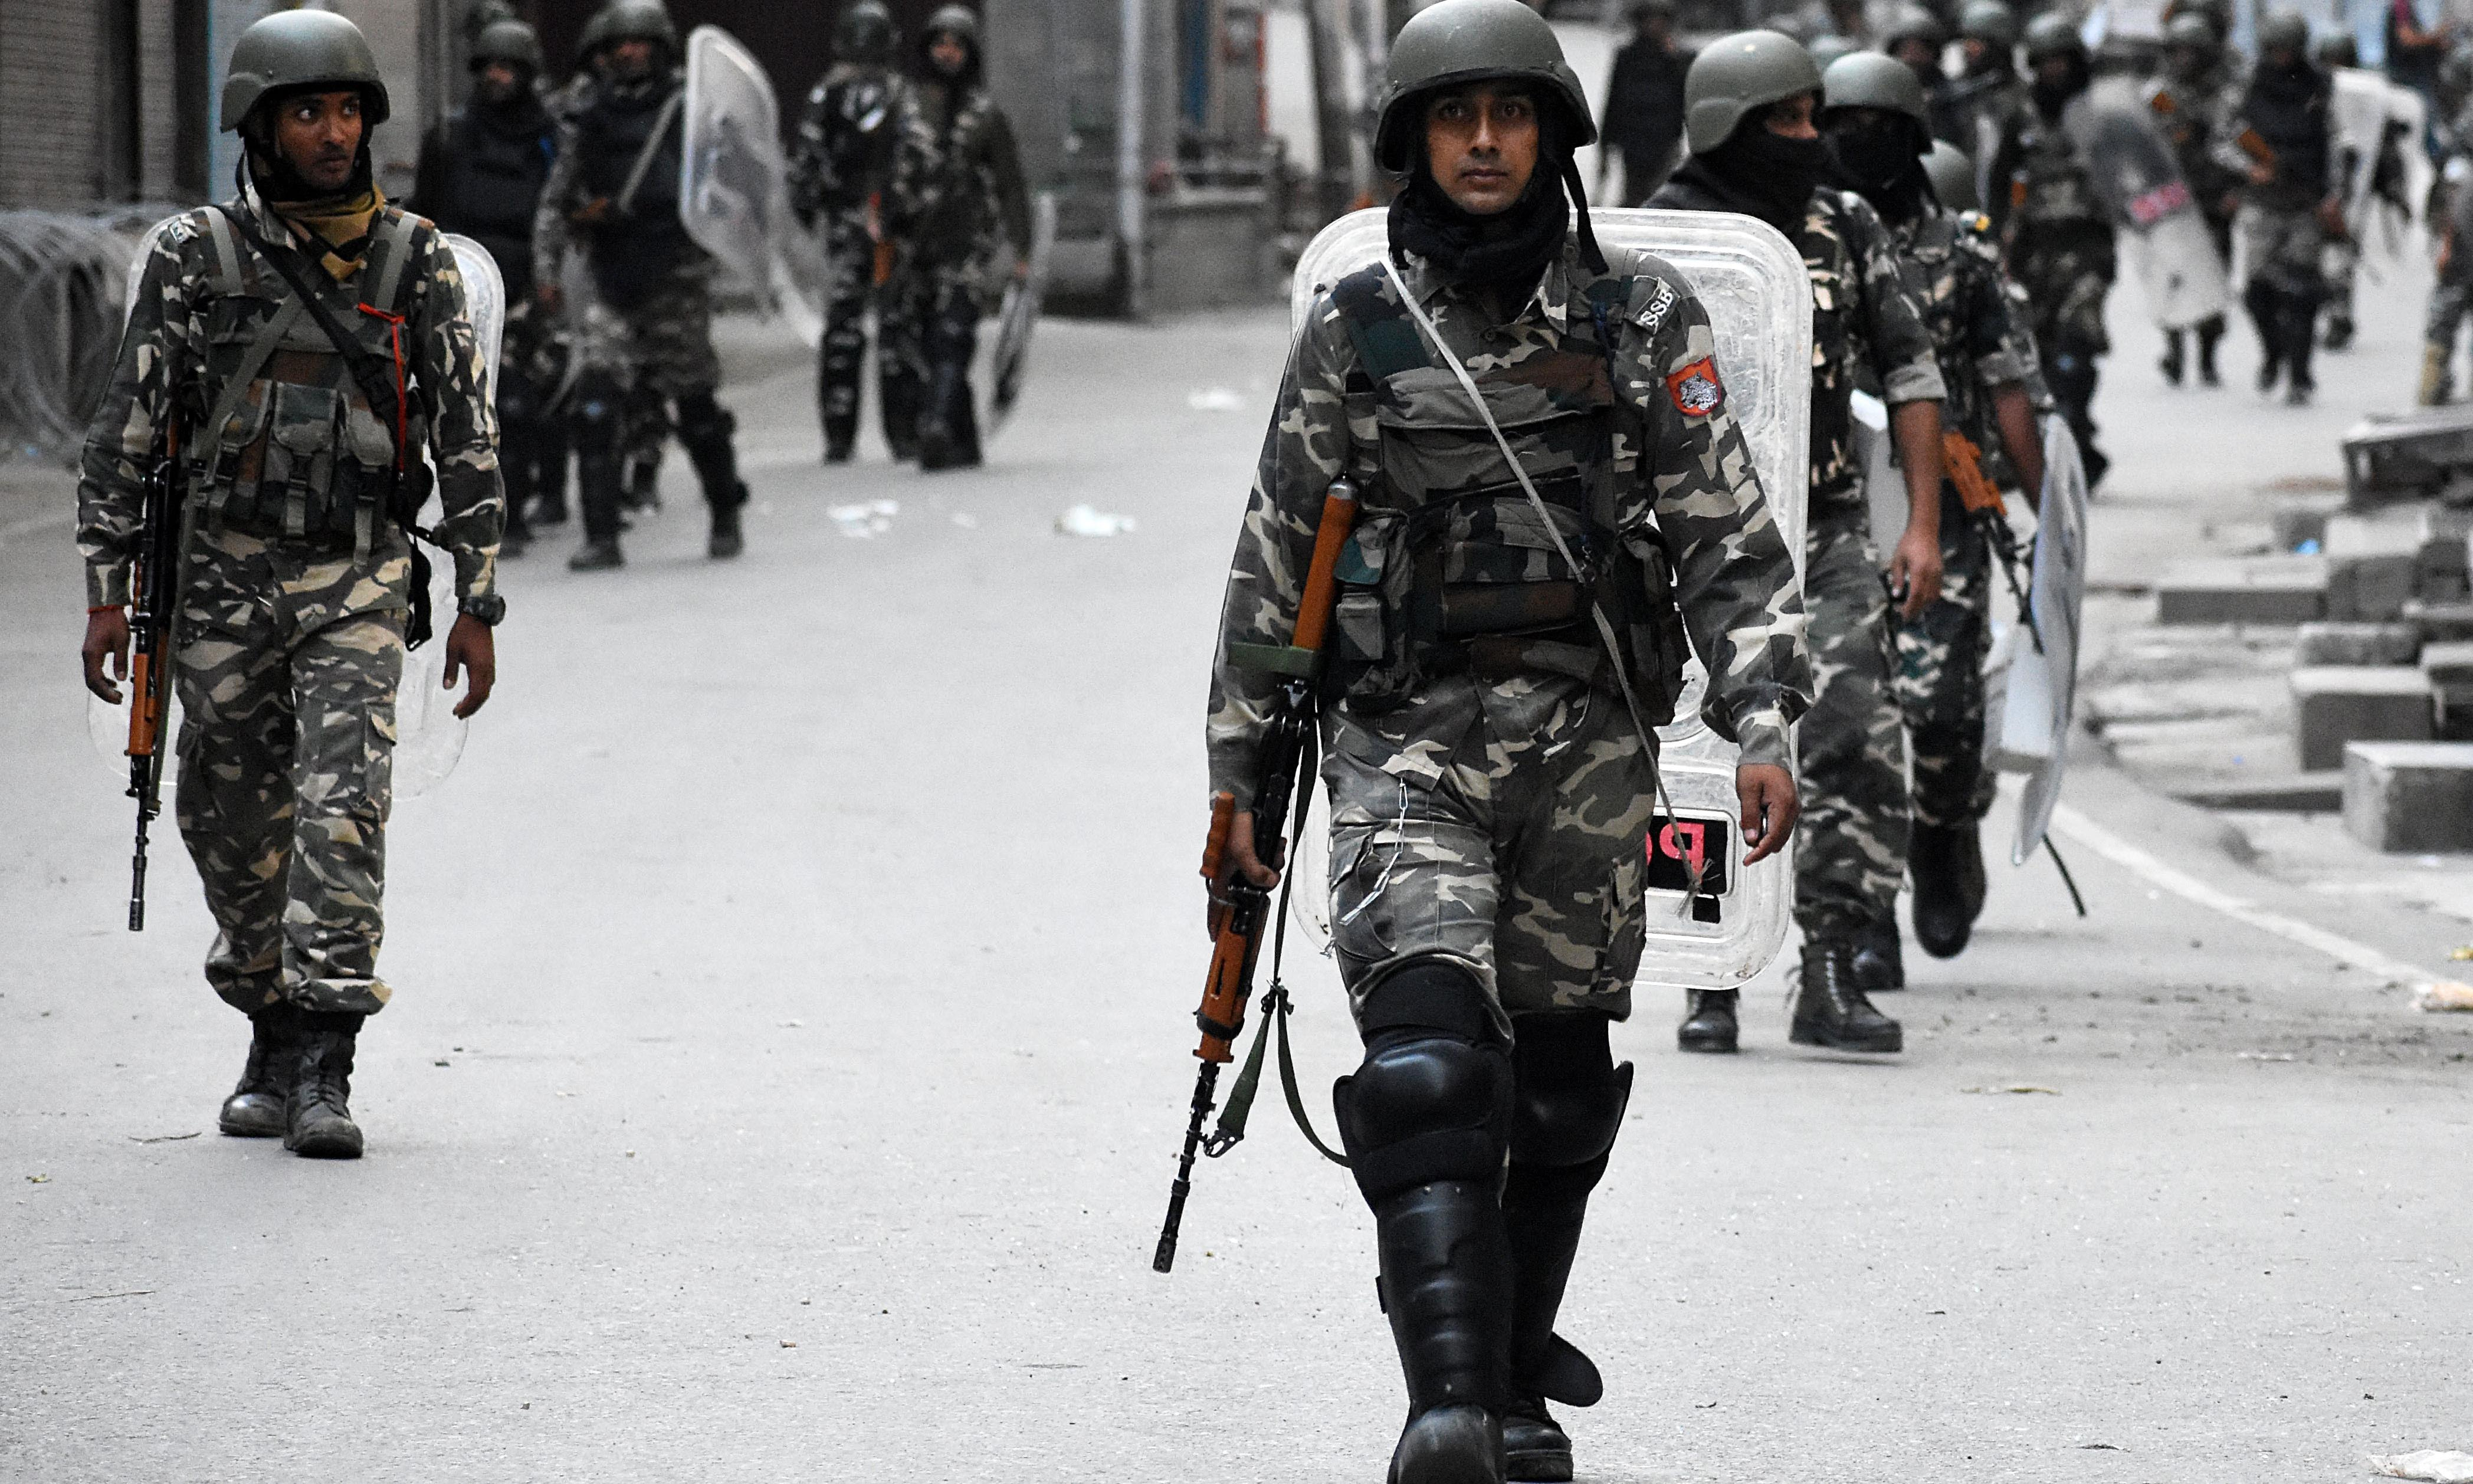 The Observer view on India's aggression over Kashmir